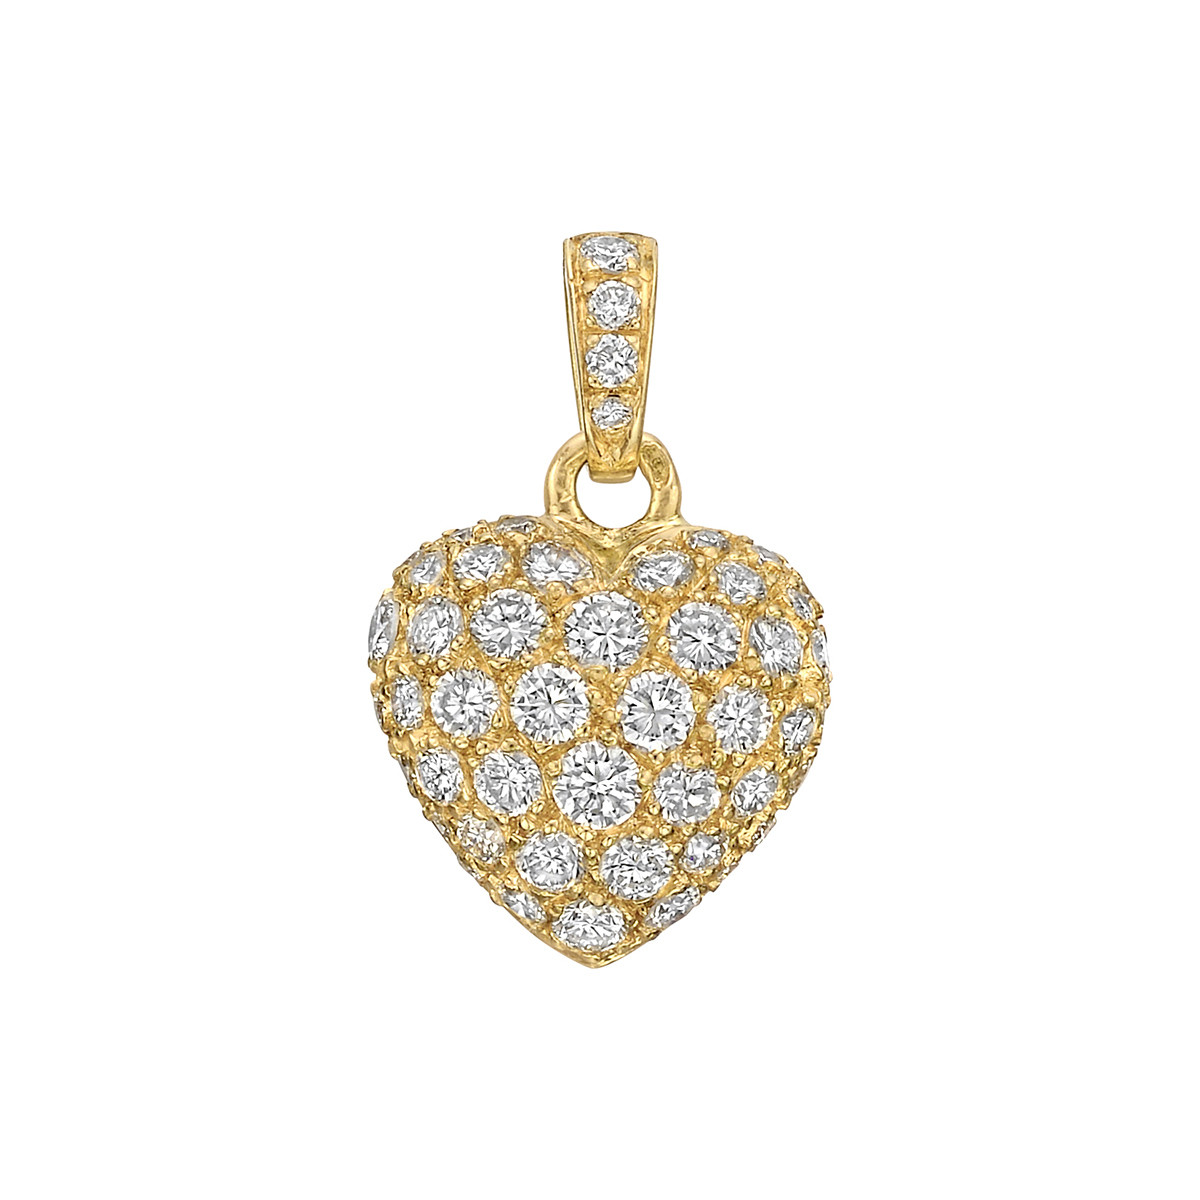 18k Yellow Gold & Diamond Heart Pendant/Charm